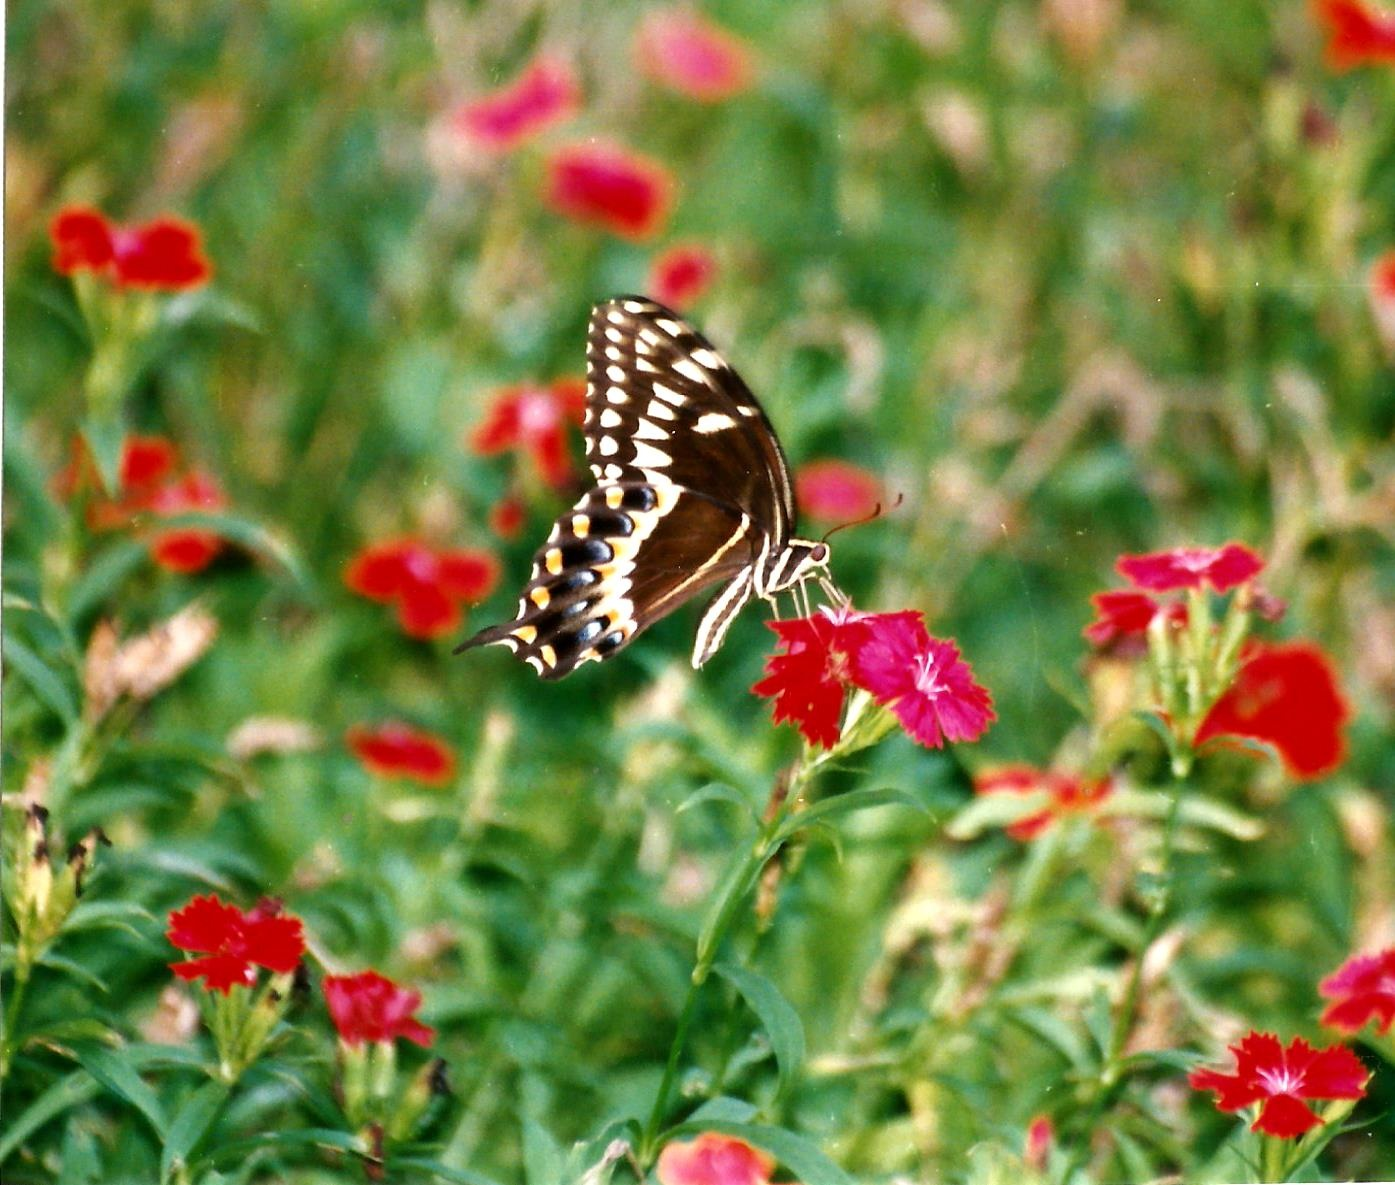 THE PALAMEDES SWALLOWTAIL by Hope Atwood Dayhoff